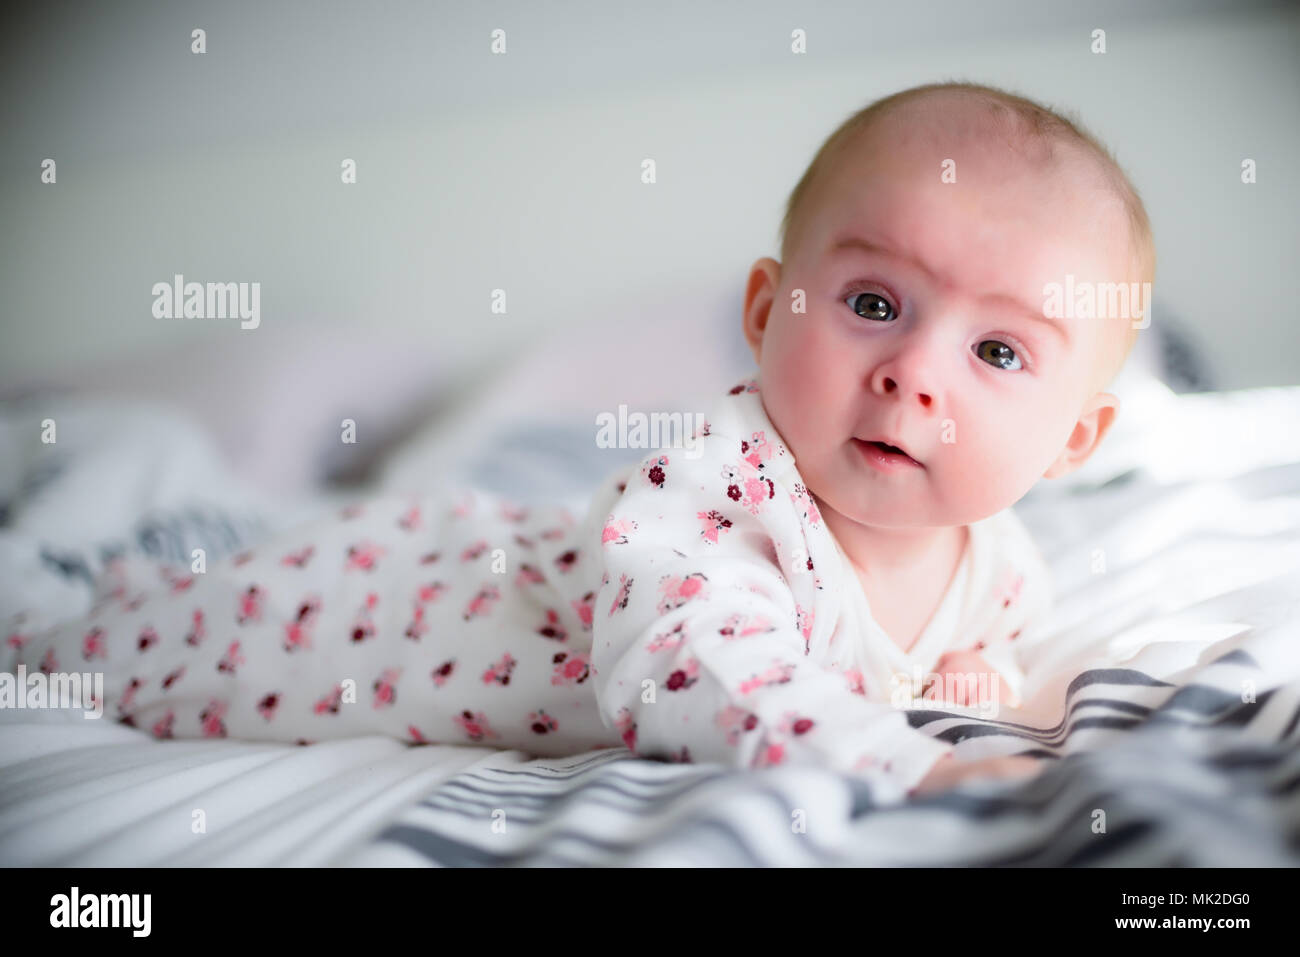 Four months old baby girl on a bed looking at camera in sunny bedroom. - Stock Image